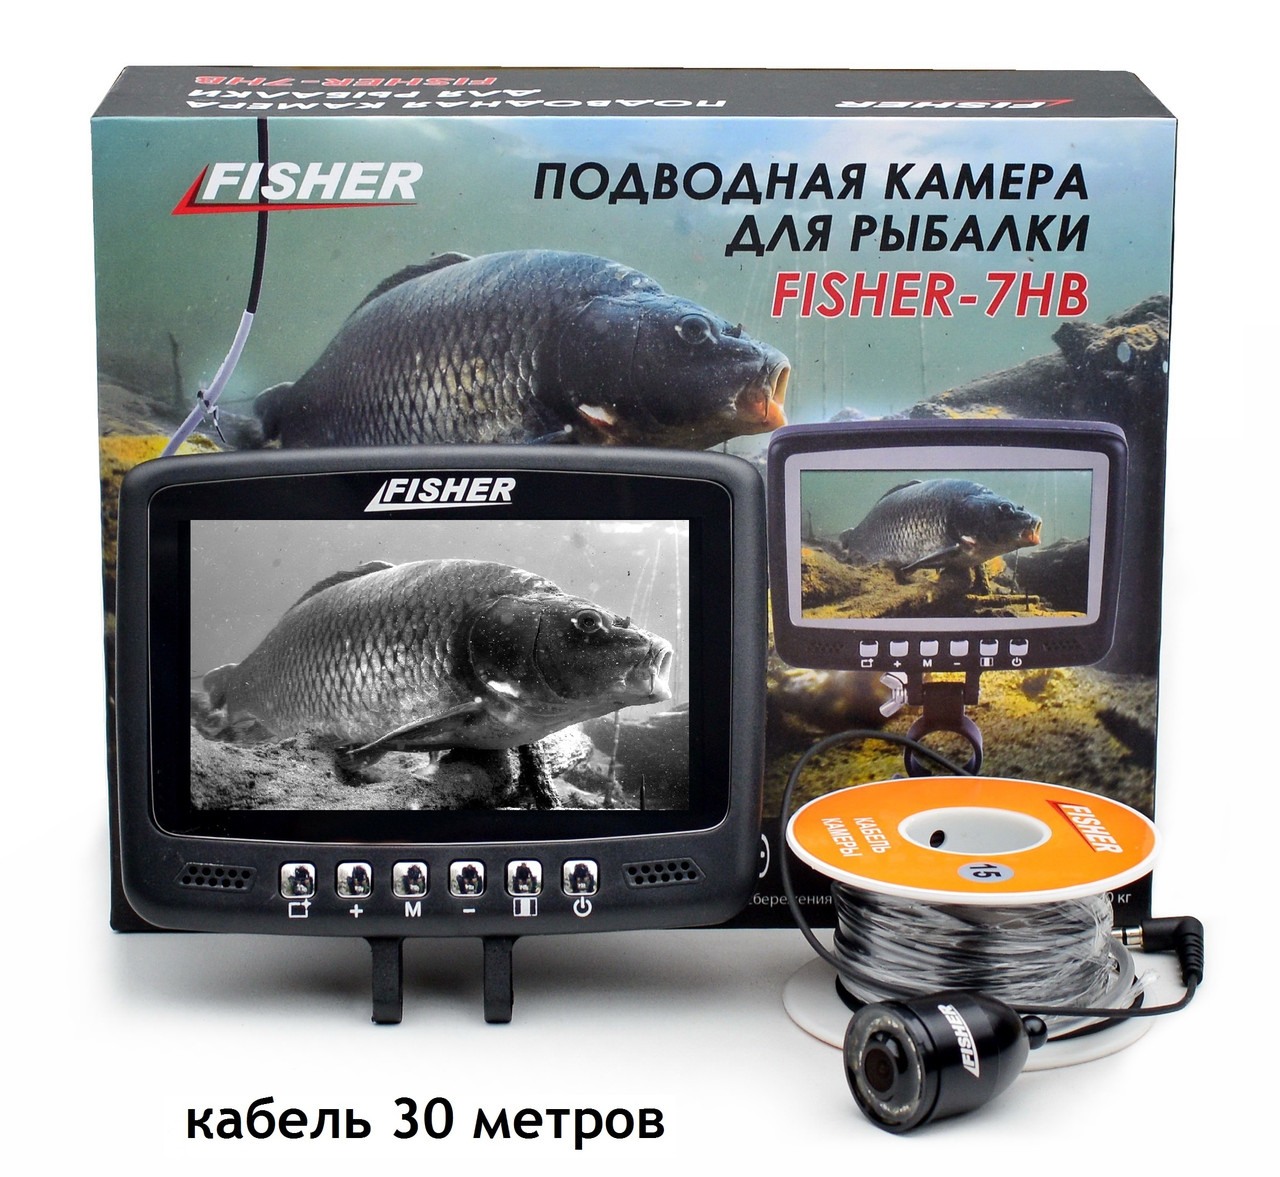 Подводная камера Fisher CR110-7HB кабель 30м